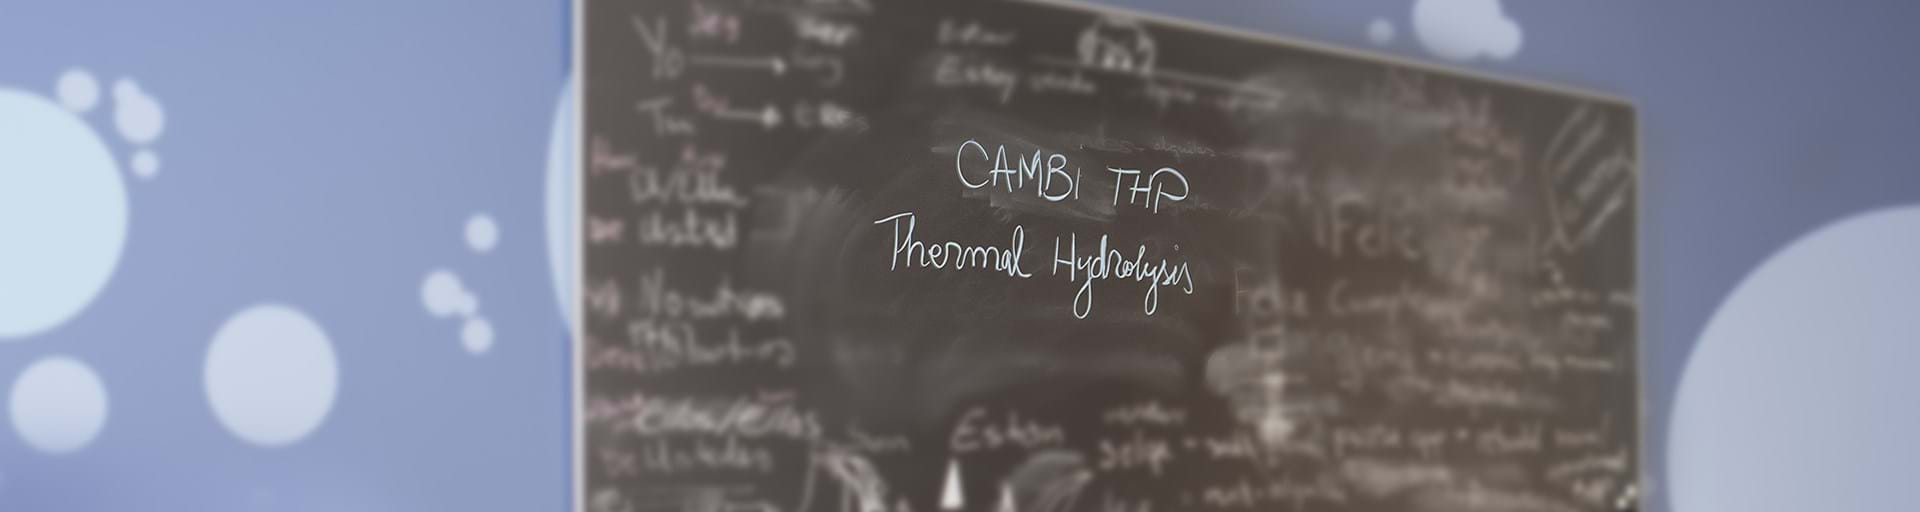 Thermal hydrolysis - Cambi - World Leader in Thermal Hydrolysis